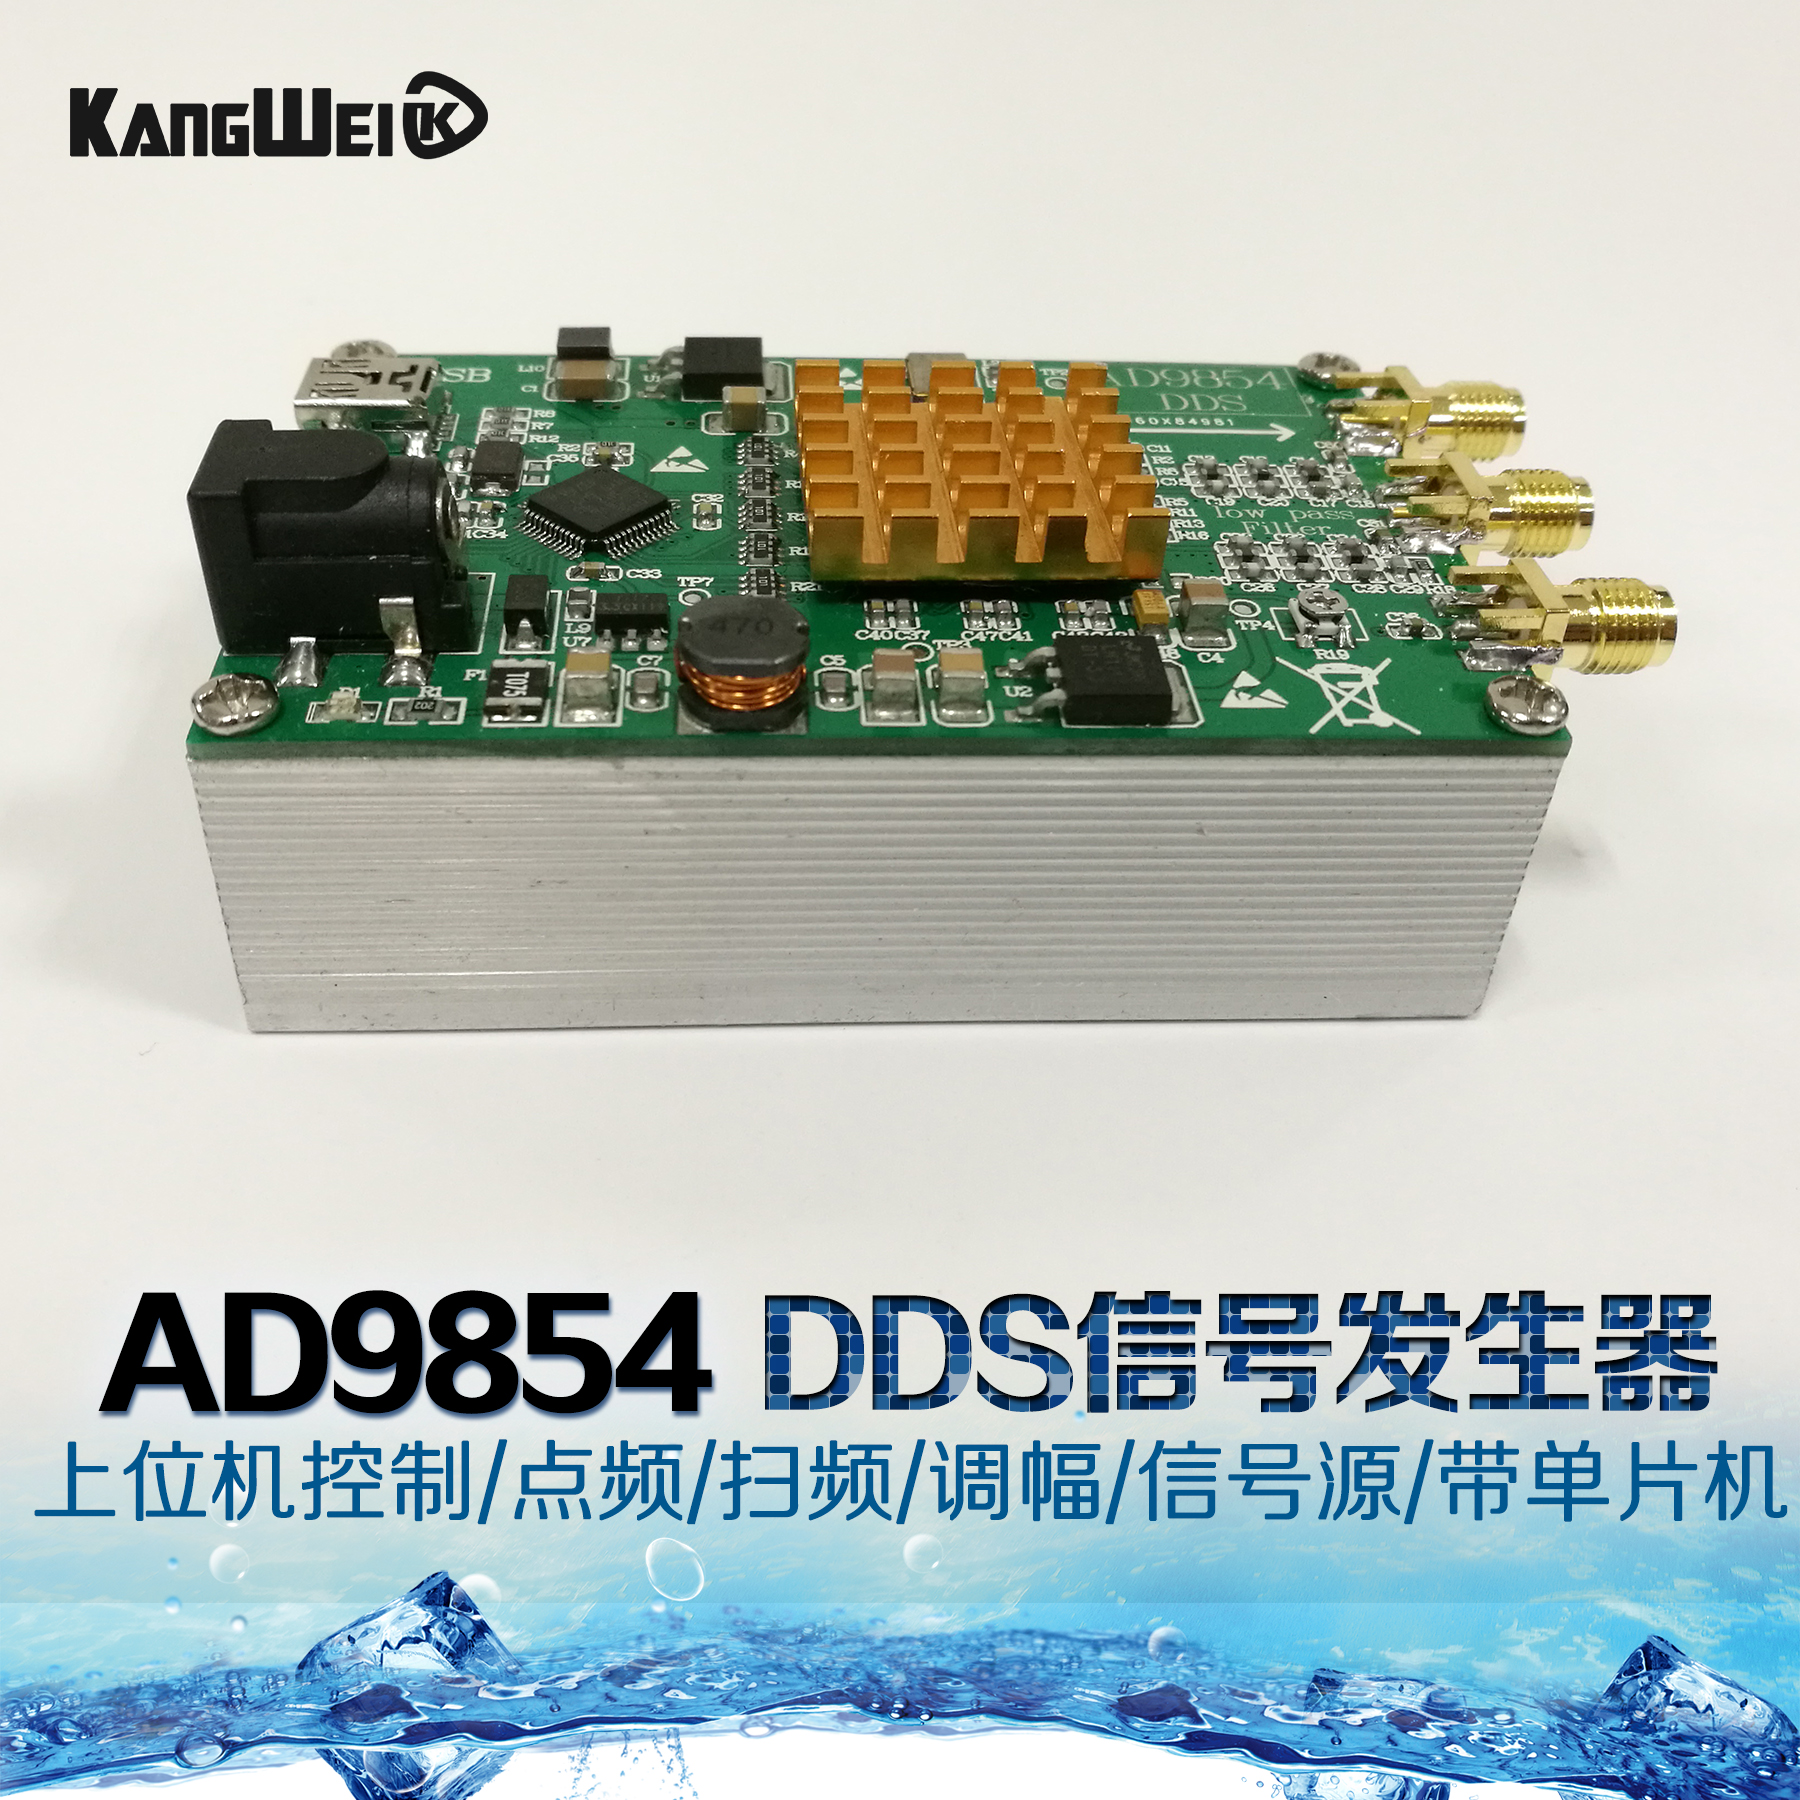 AD9854 single chip microcomputer, DDS signal generator module, upper computer frequency sweep frequency modulation signal source